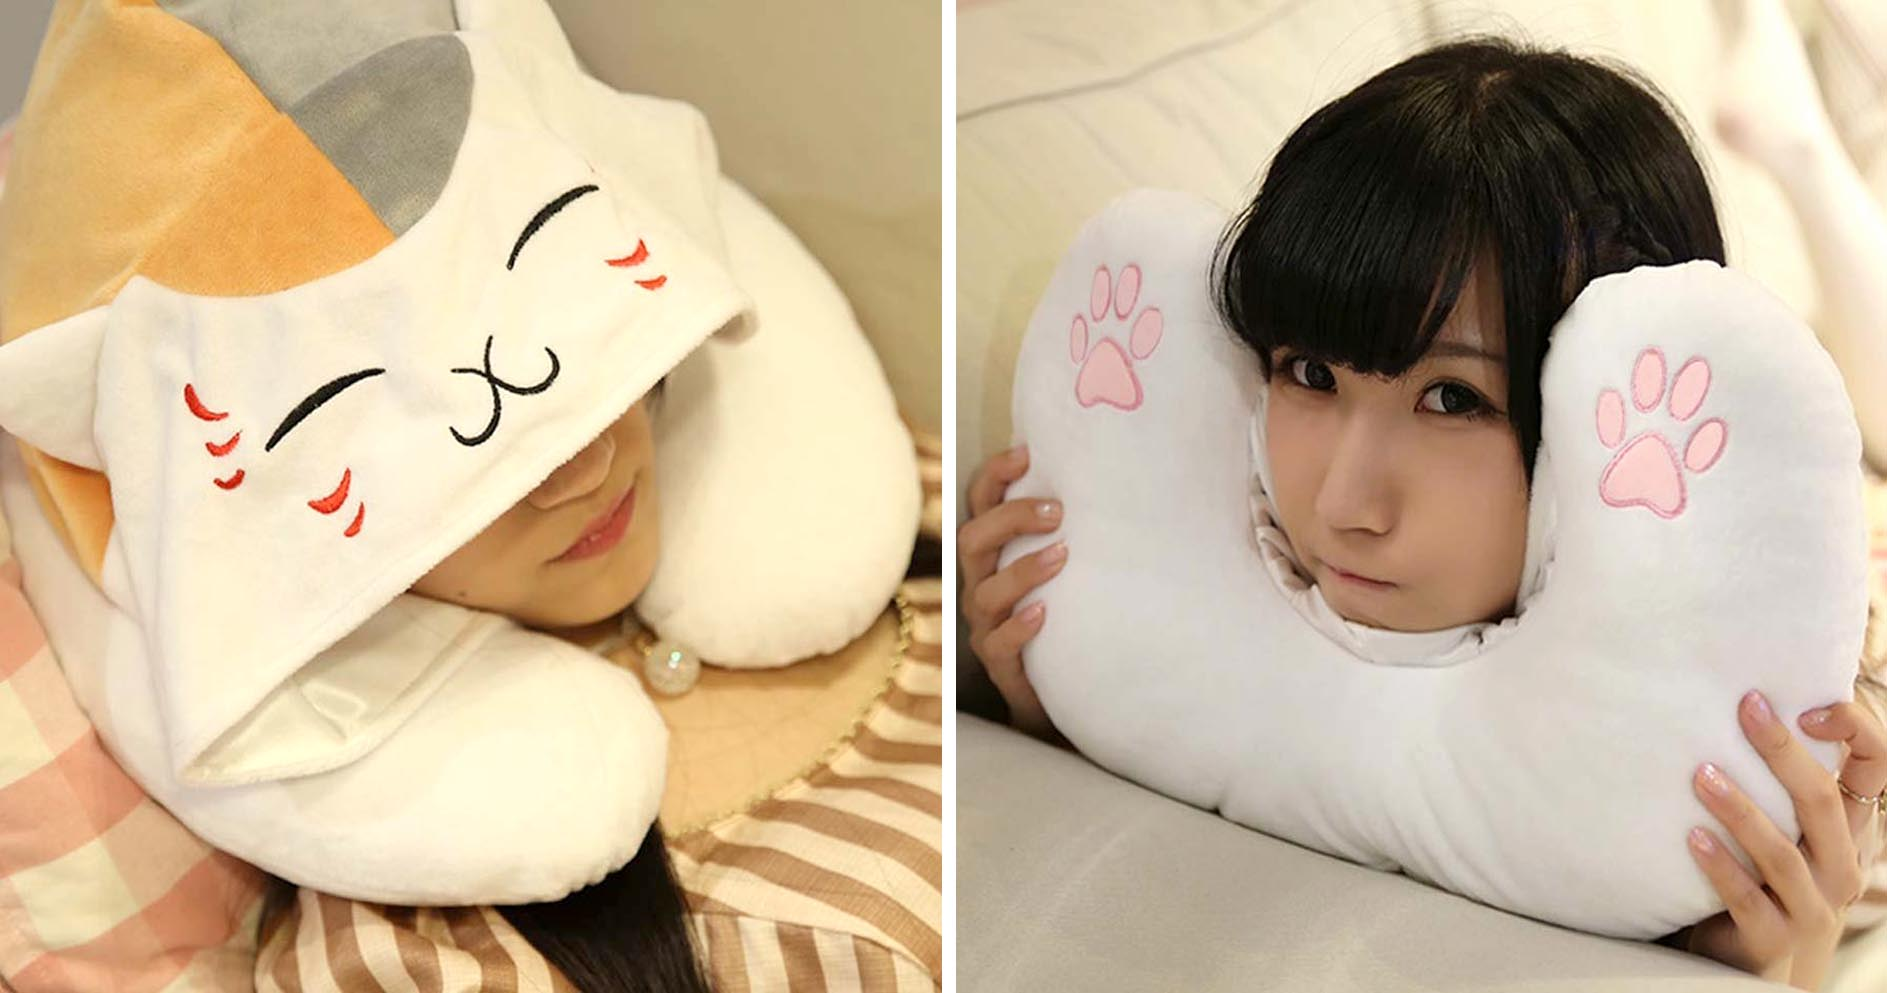 Natsume Neck Pillow Shut Up And Take My Yen